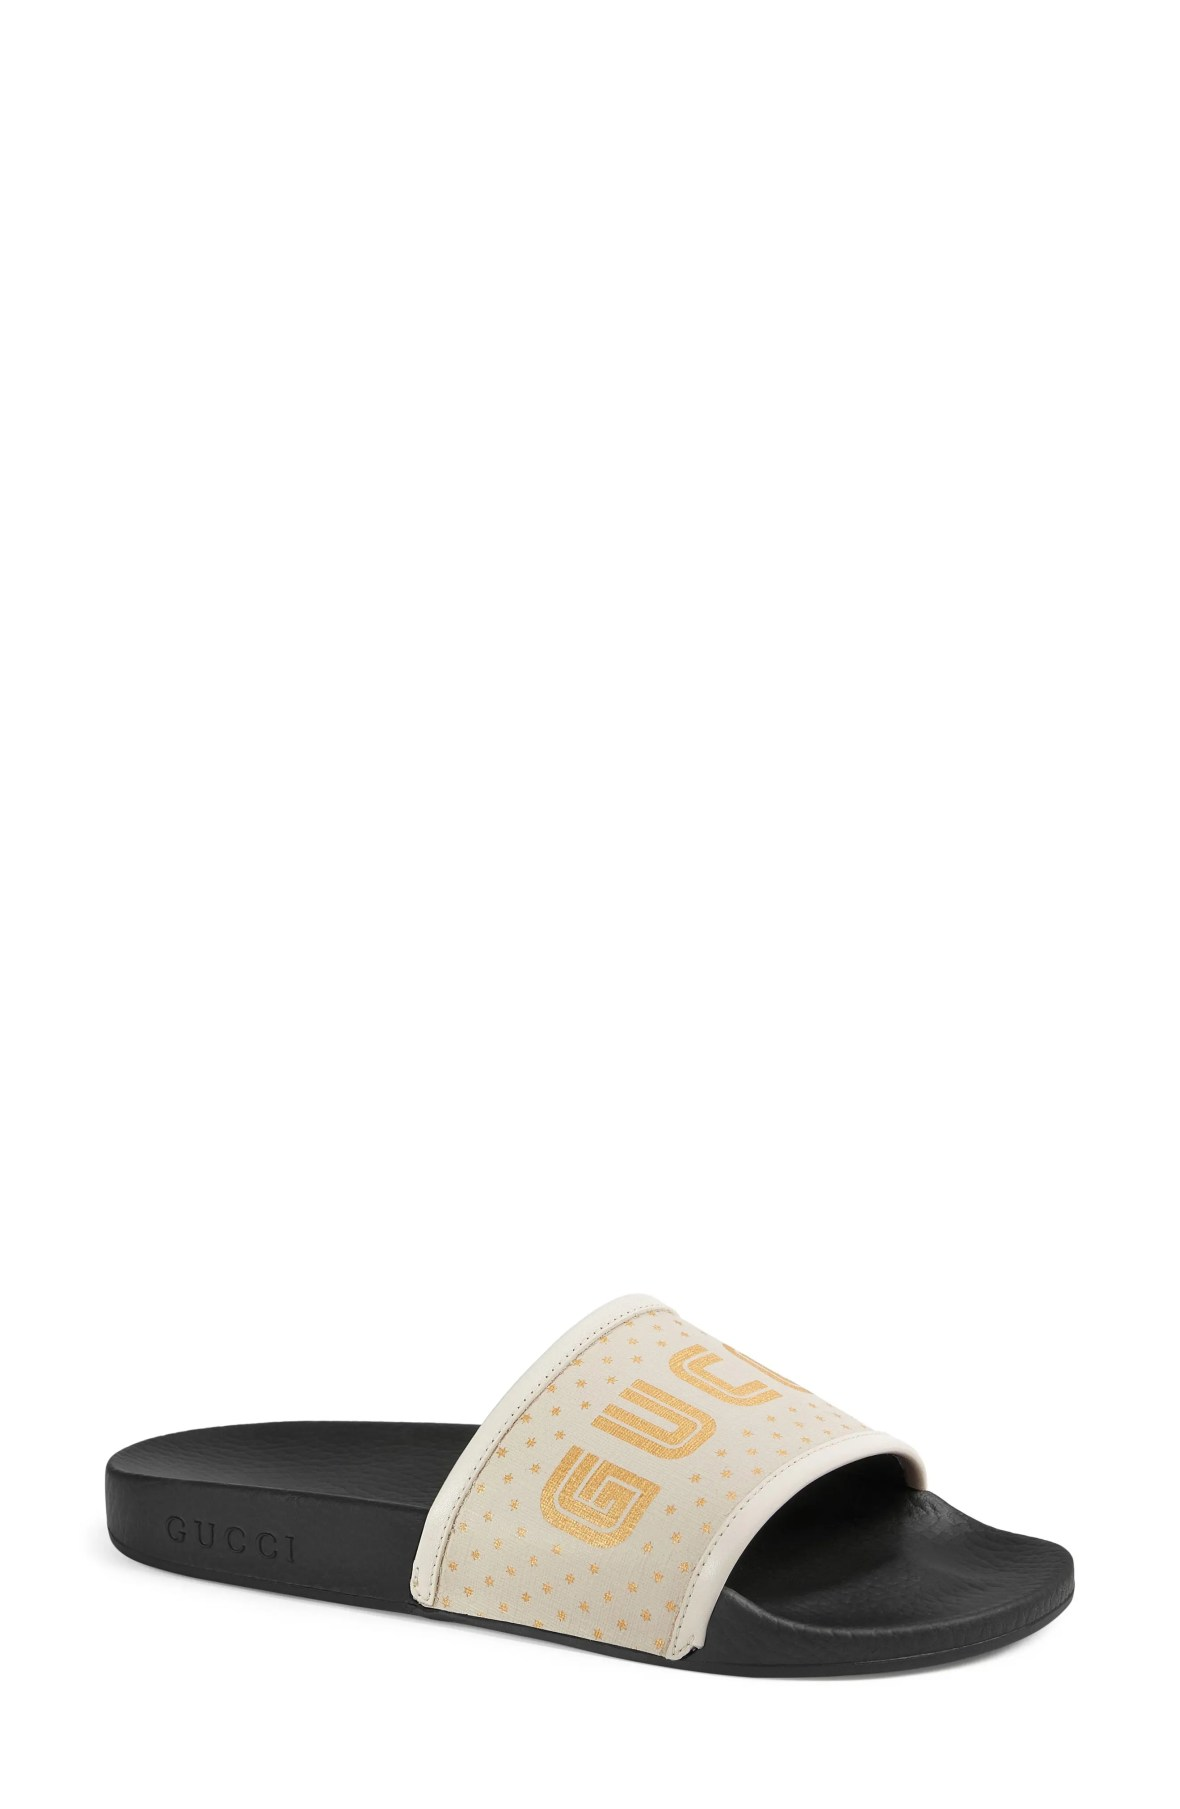 Gucci Pursuit Guccy Logo Slide Sandal (Women)